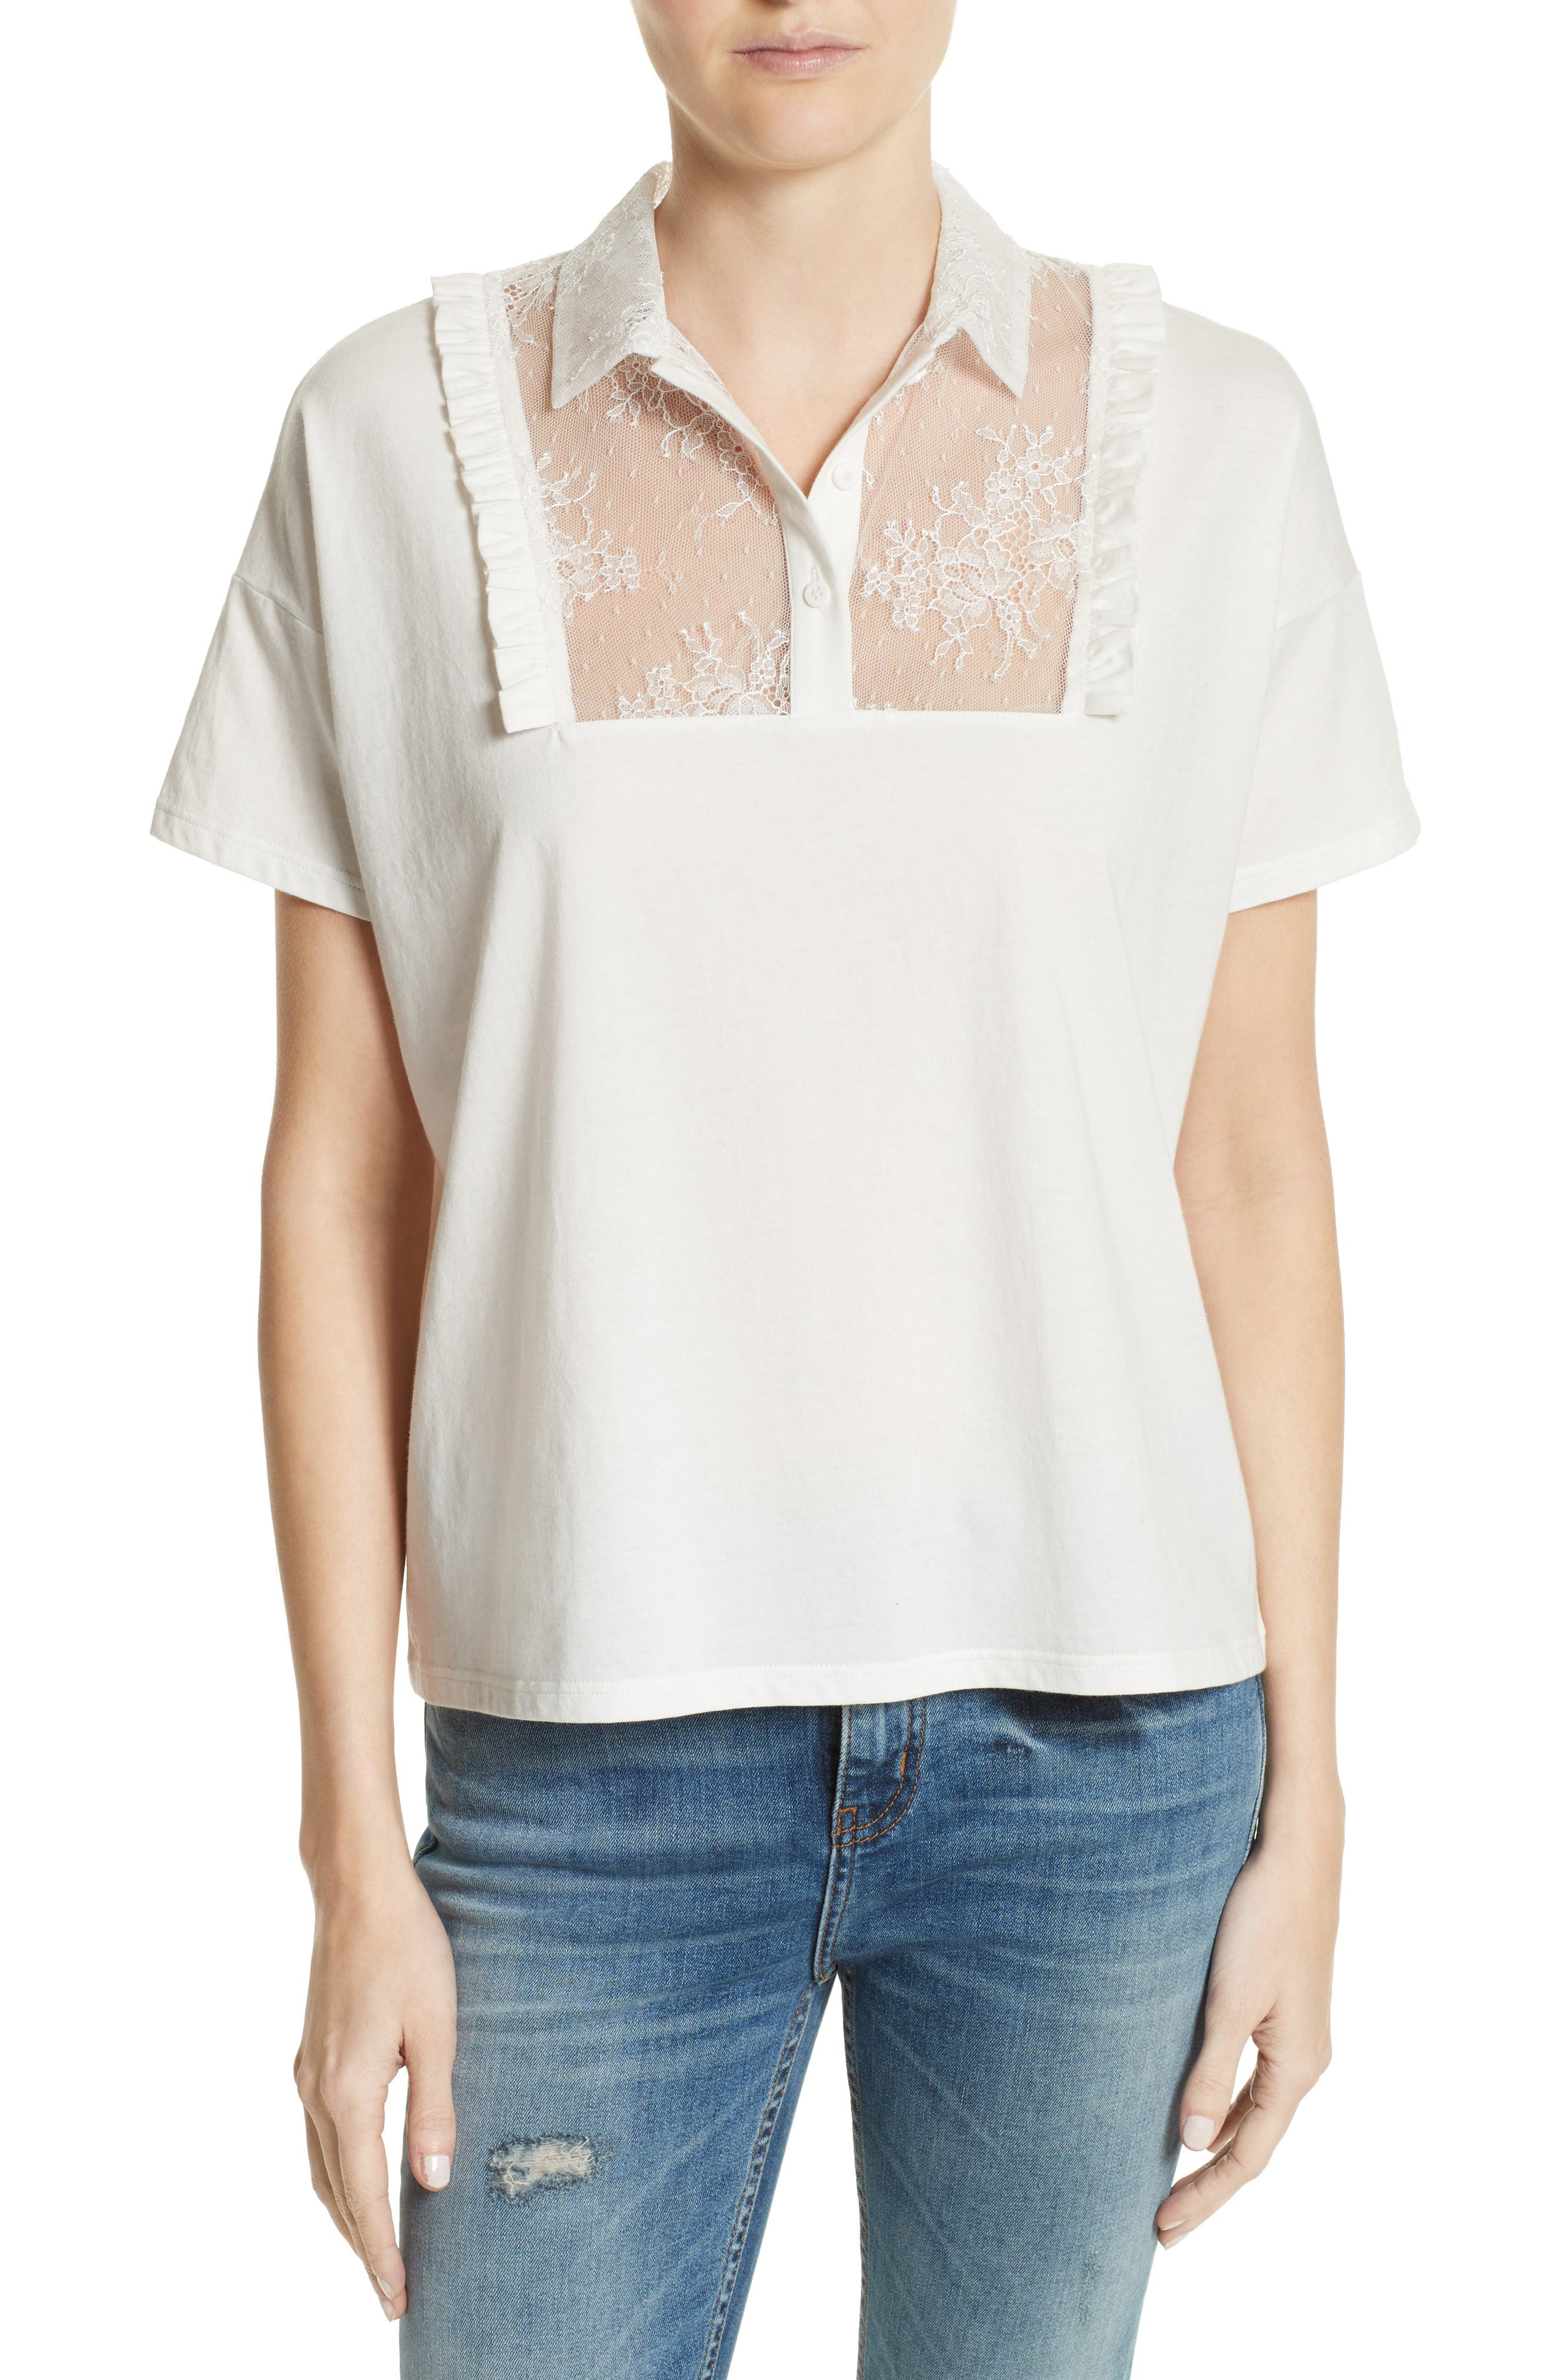 The Kooples Lace & Ruffle Cotton Top